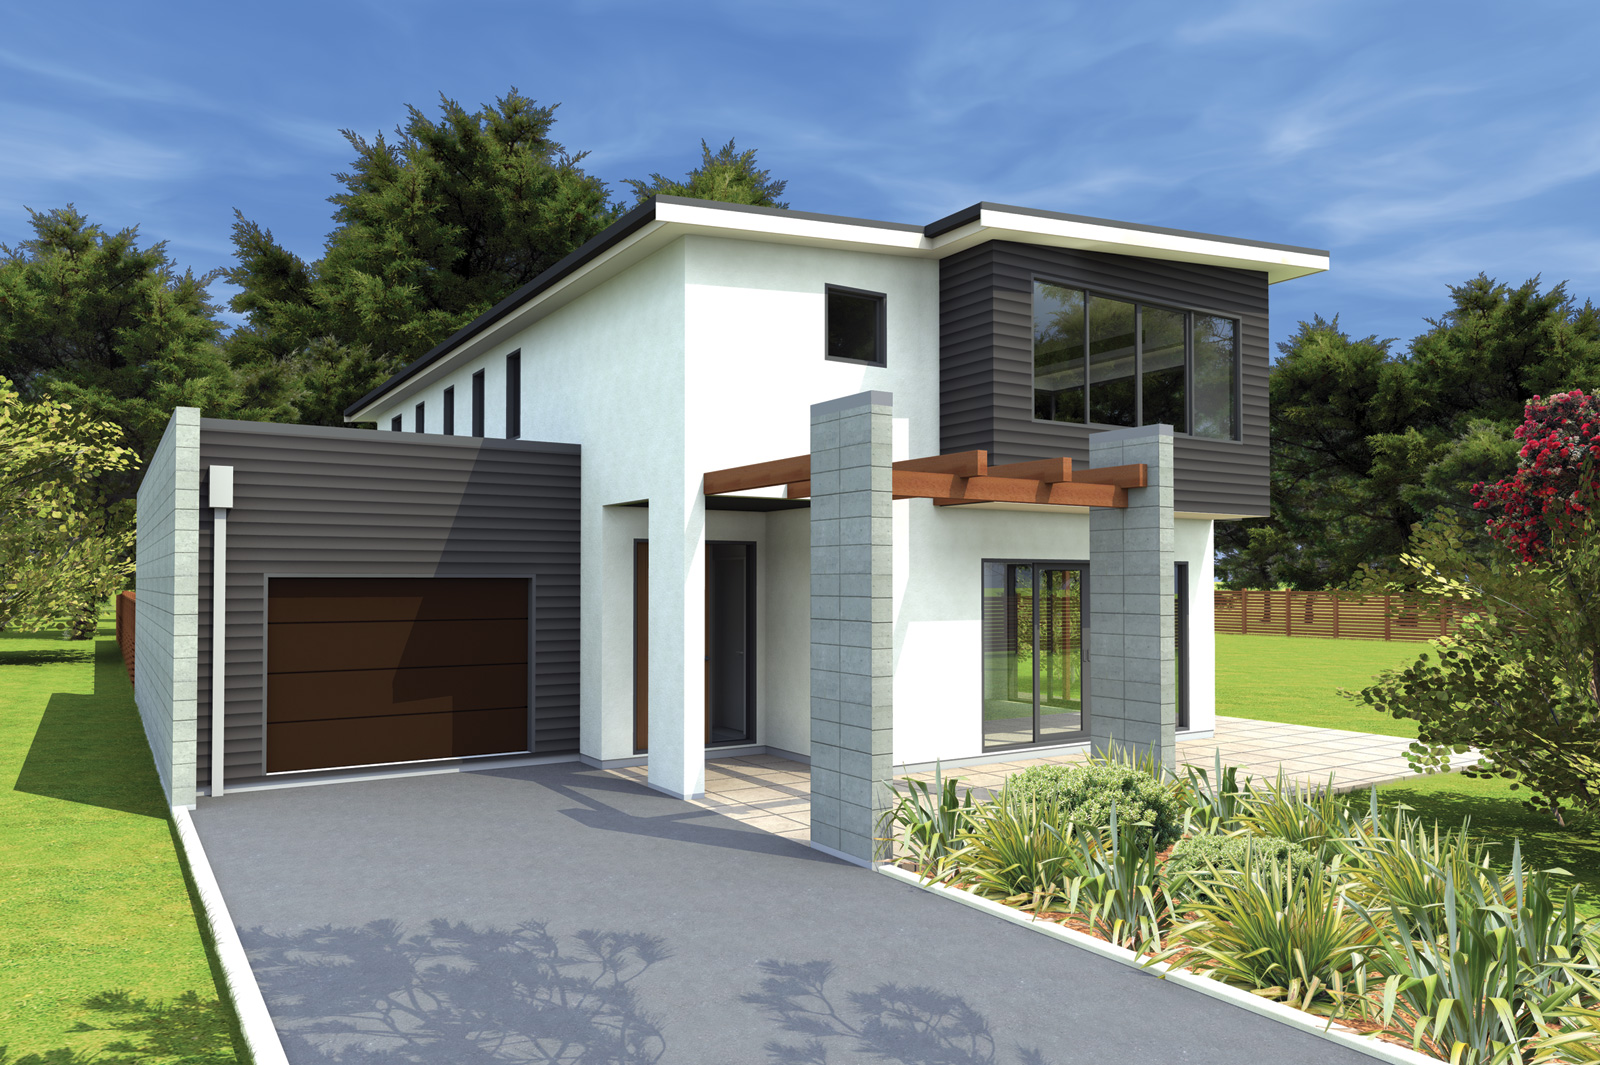 New home designs latest new modern homes designs new for Modern house designs uk